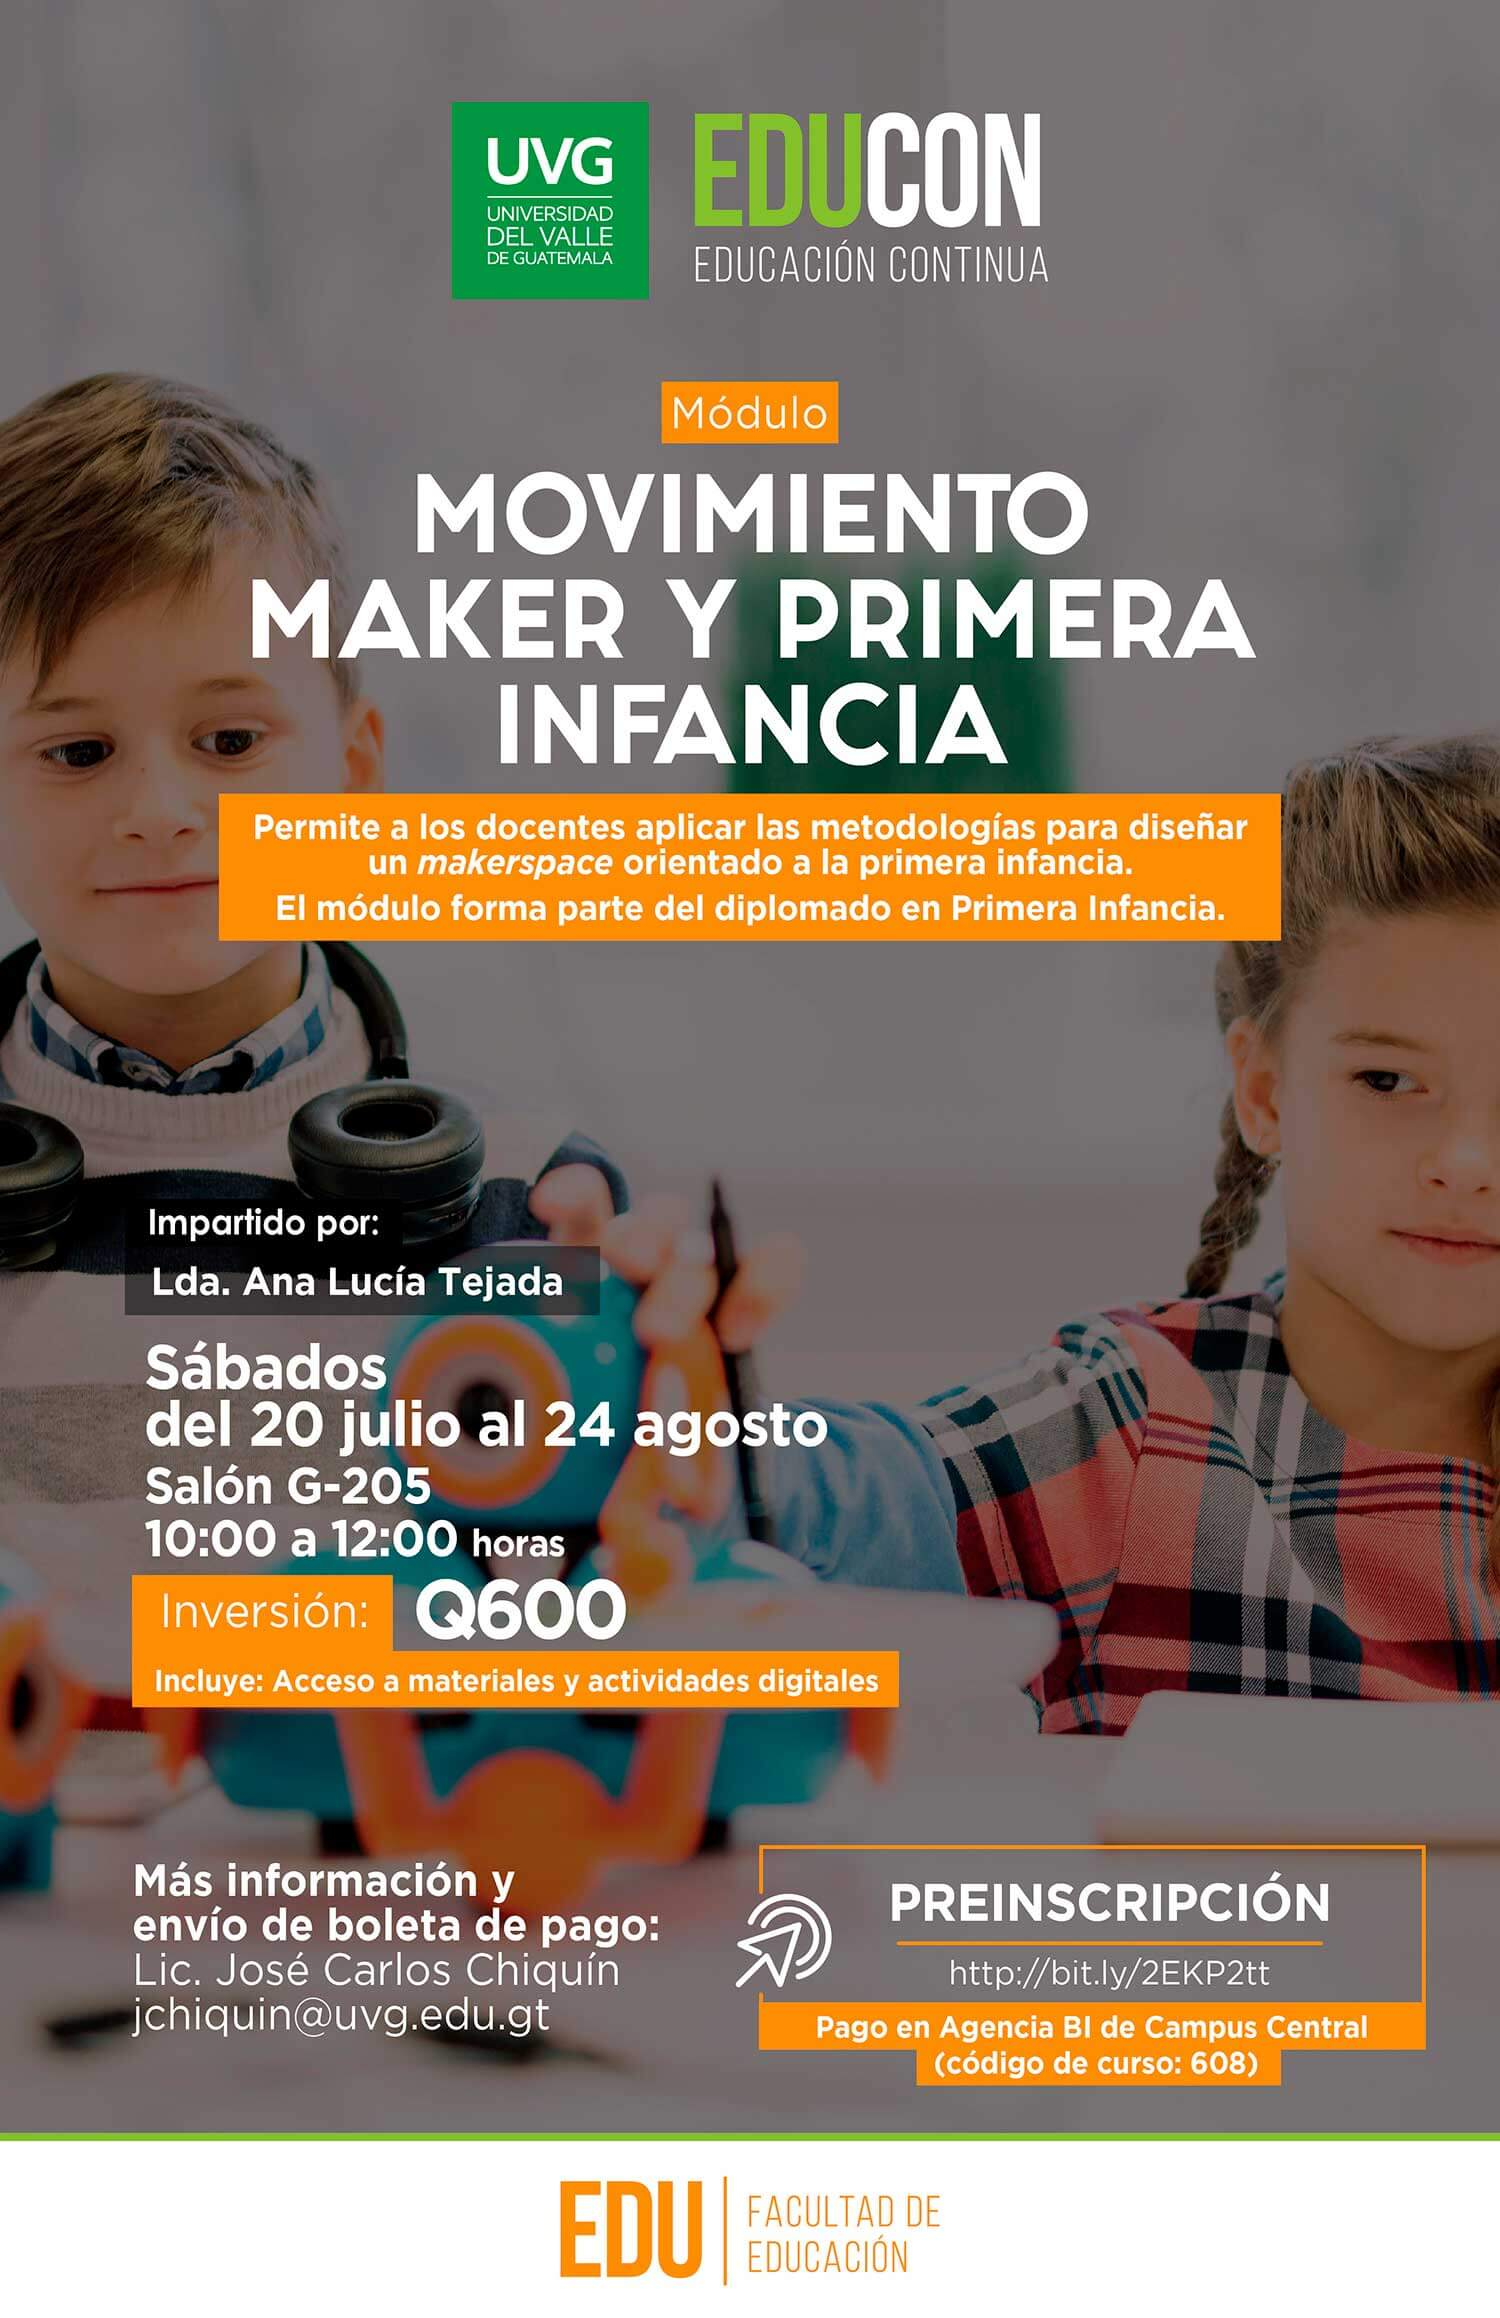 MOVIMIENTO MAKER Y PRIMERA INFANCIA